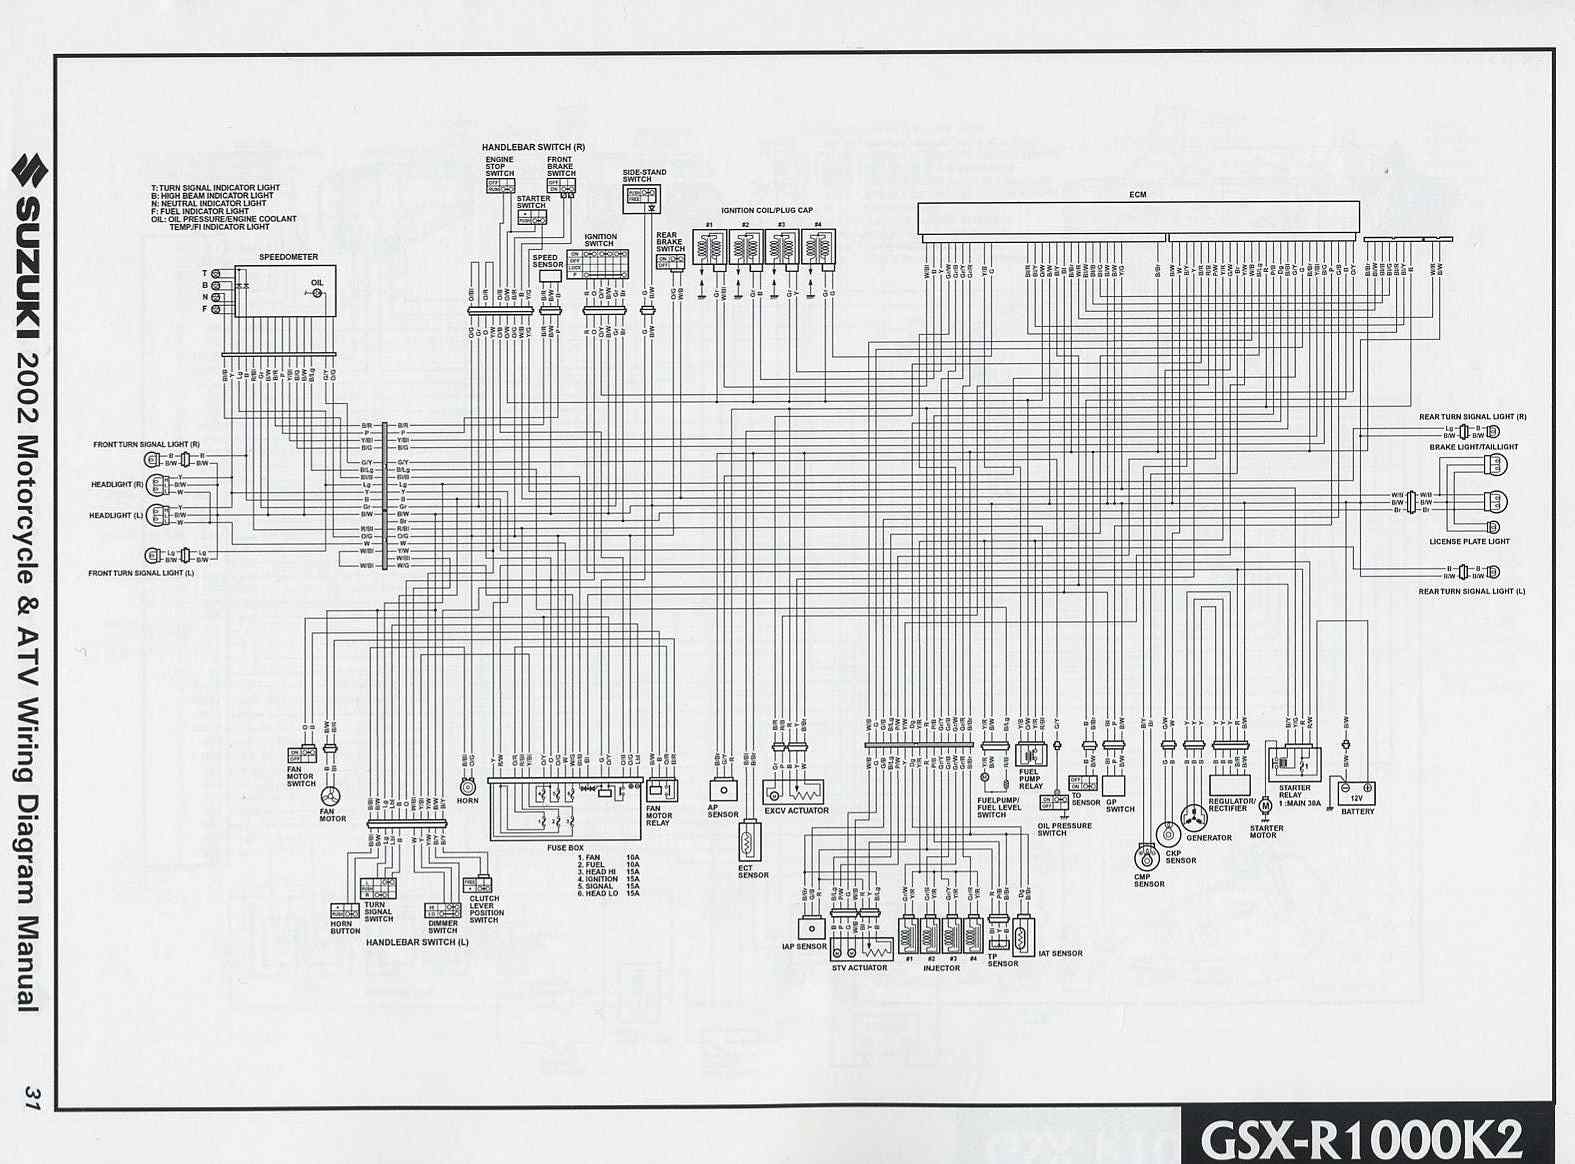 Gsxr 1000 Wiring Diagram Schematics Cable Harness